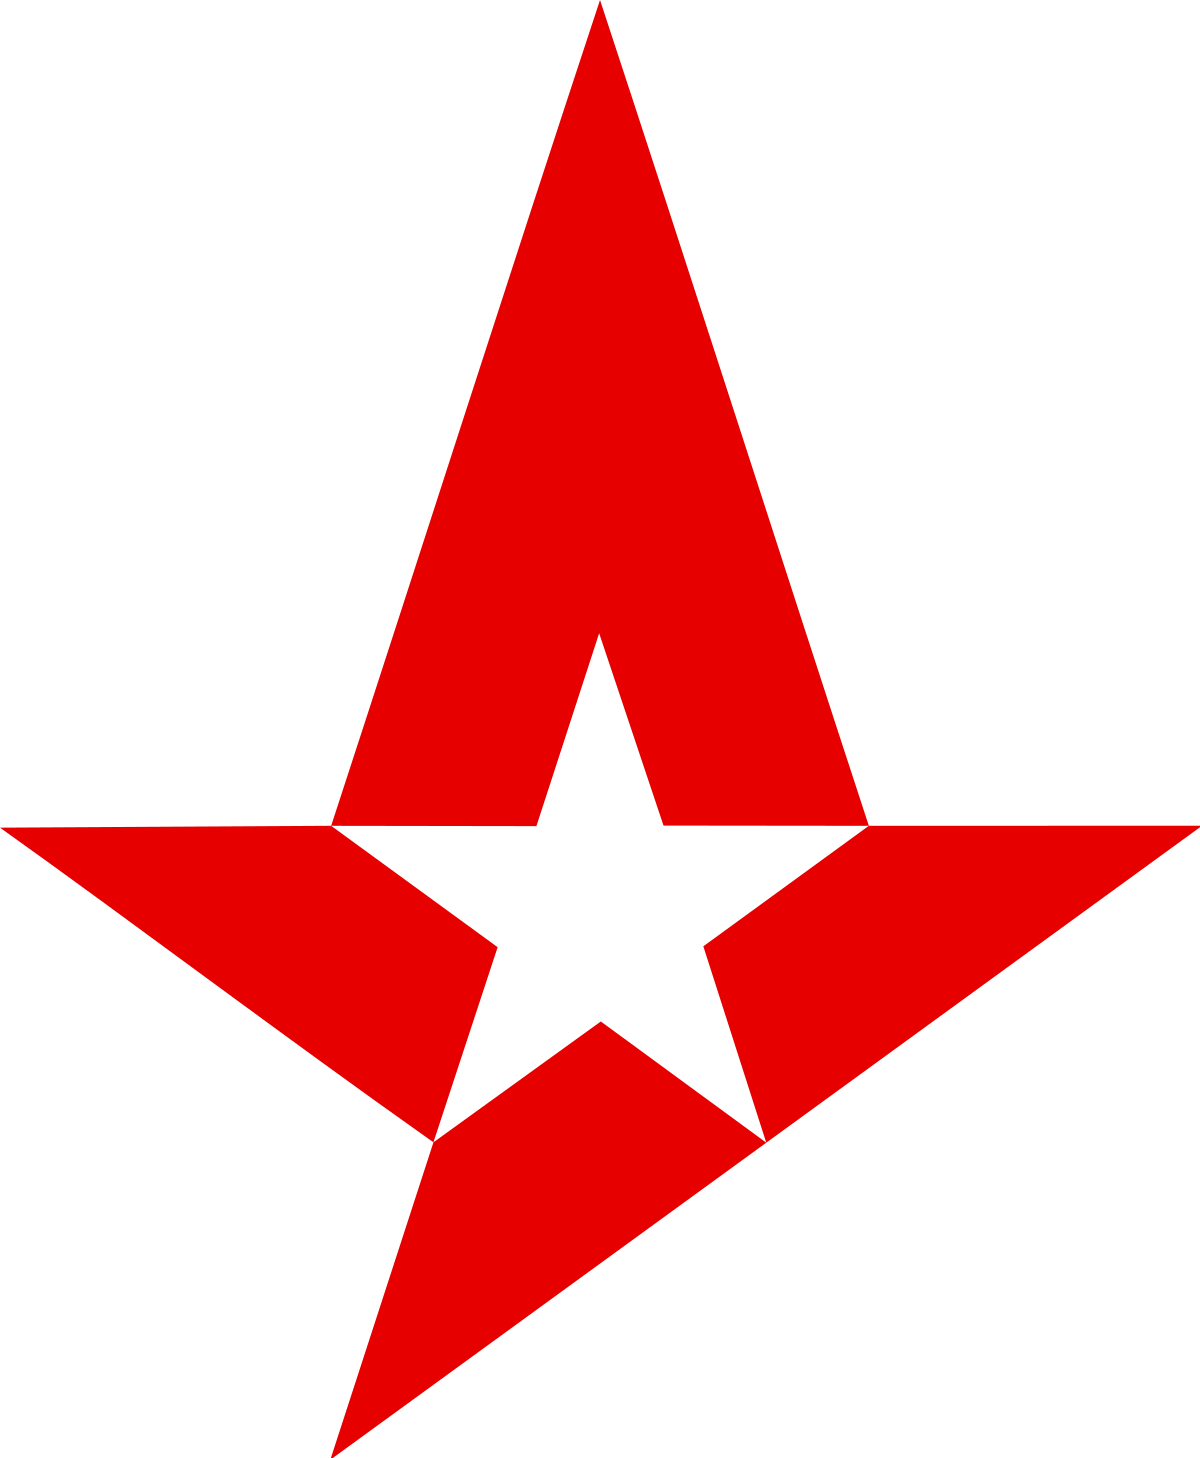 Astralis CS:GO Team